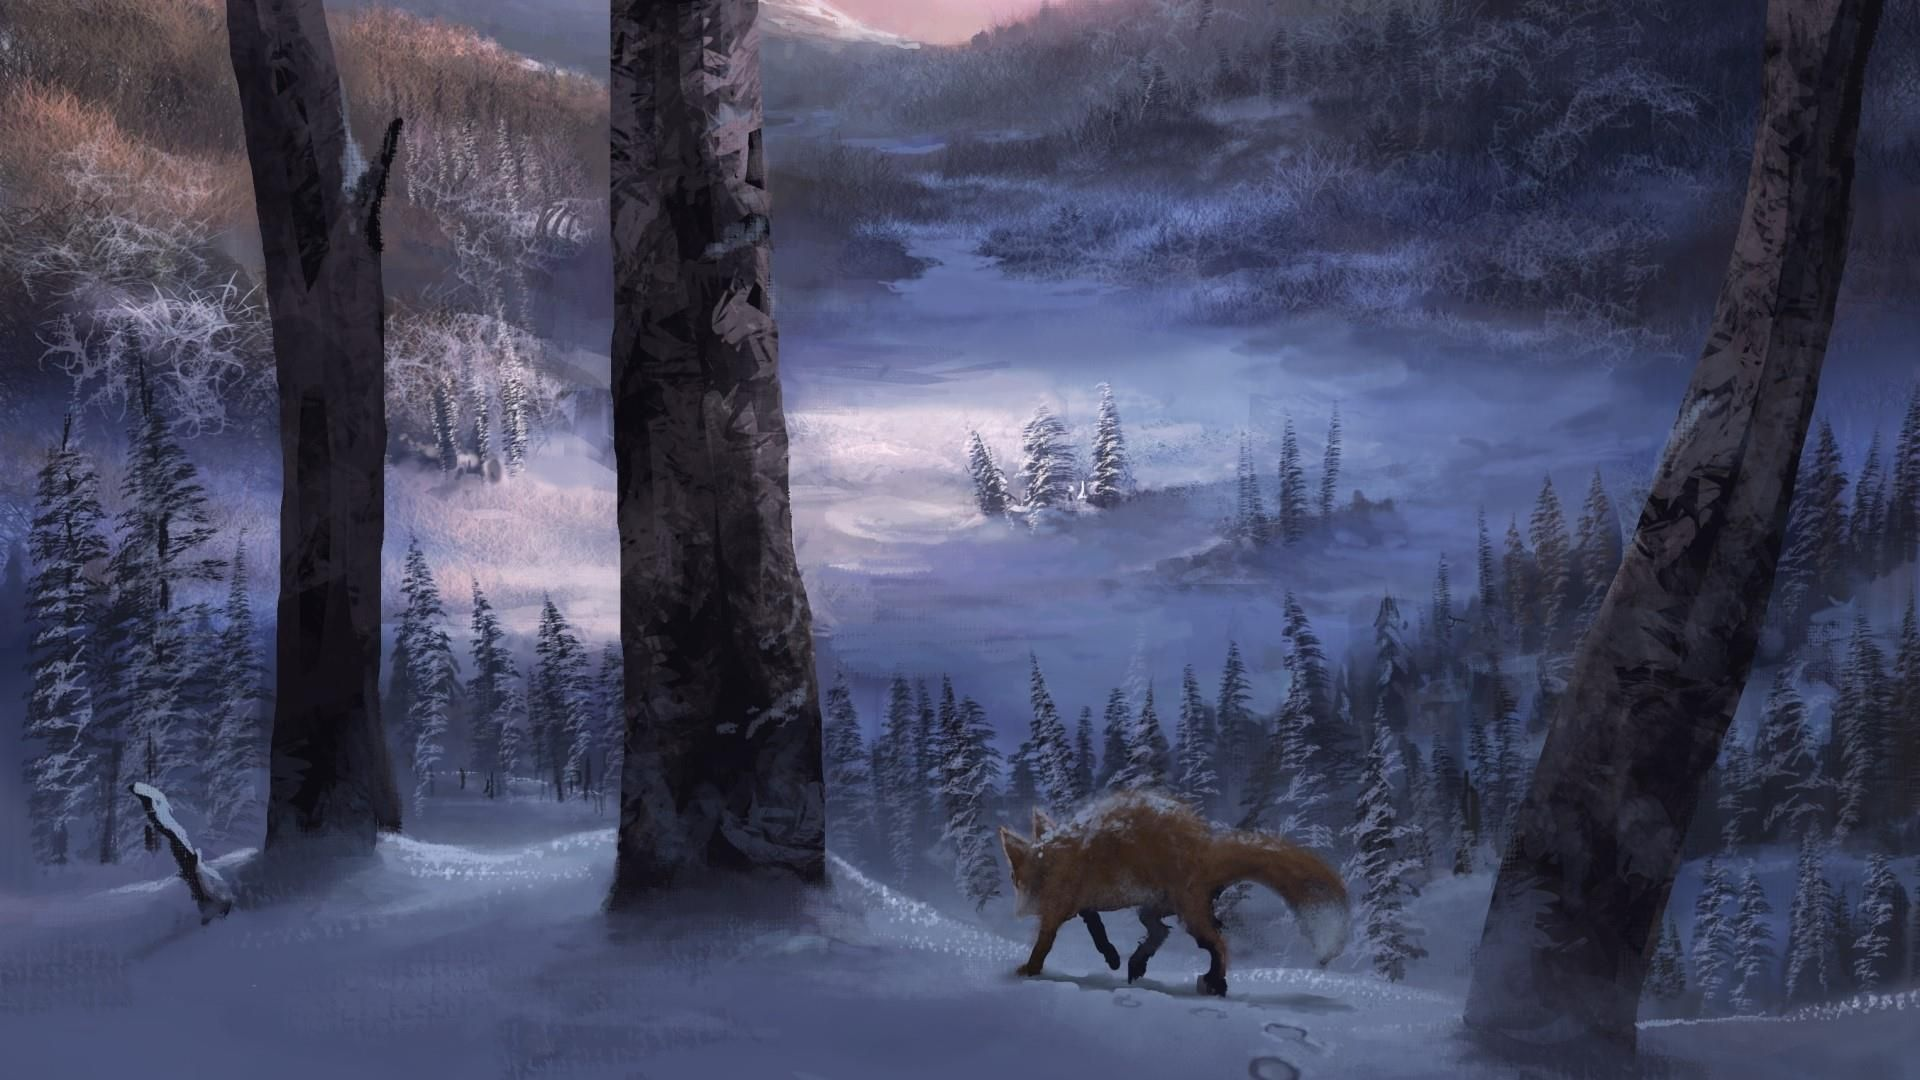 Lone Fox In The Winter Forest Hd Wallpaper Wallpaper Fantasy Landscape Winter Forest Fox Images